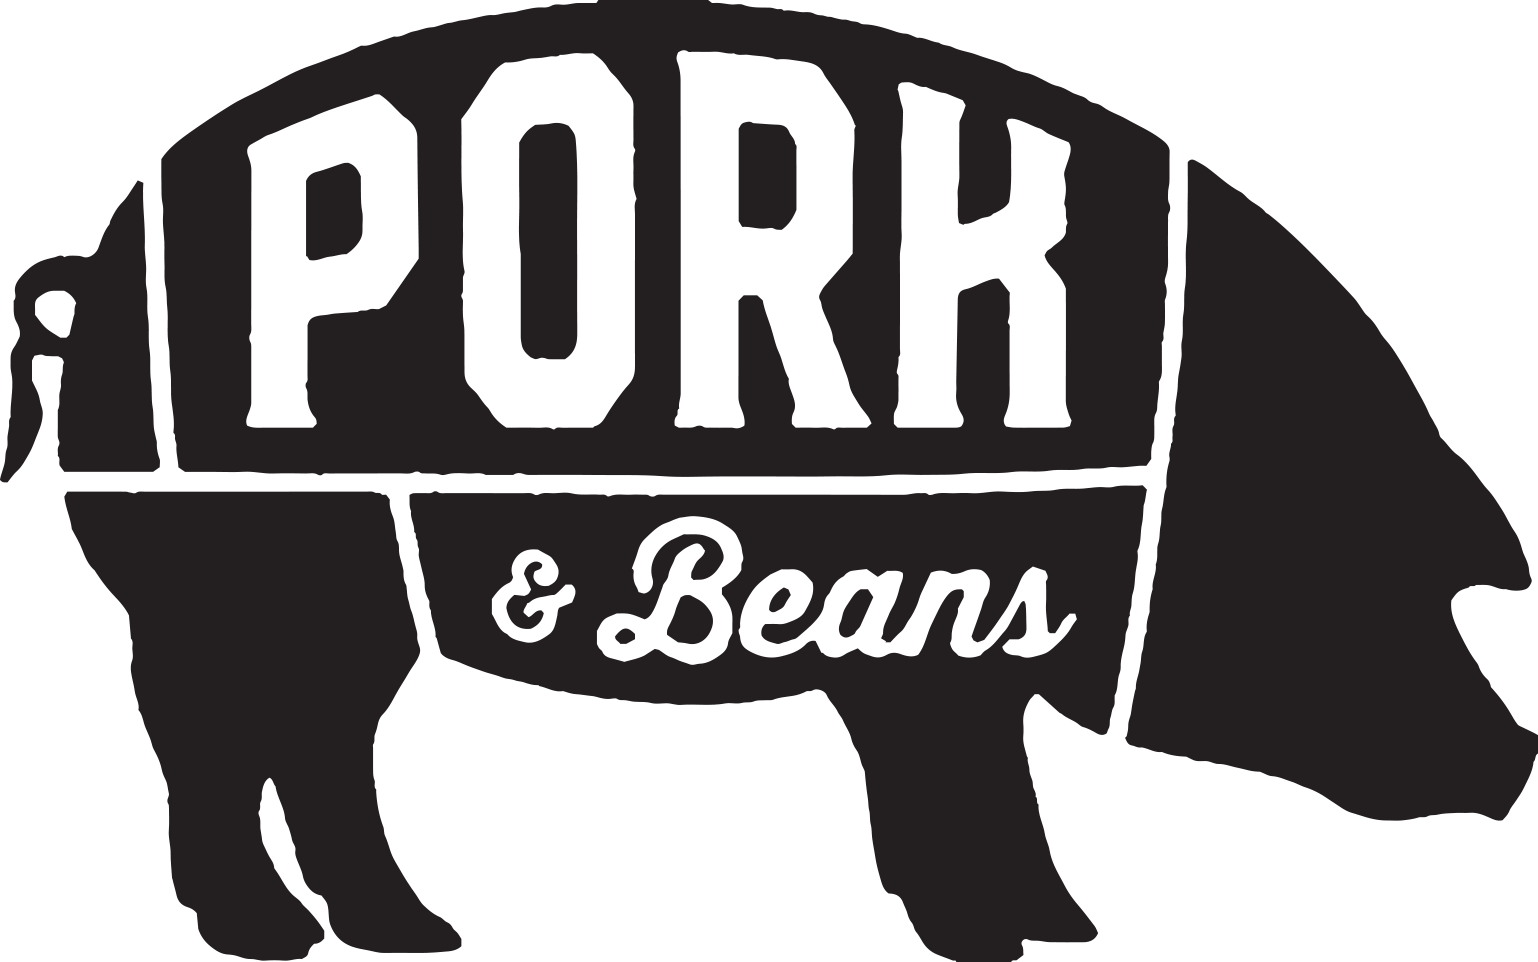 pork and beans PIG 4x6 rubber stamp artwork.png